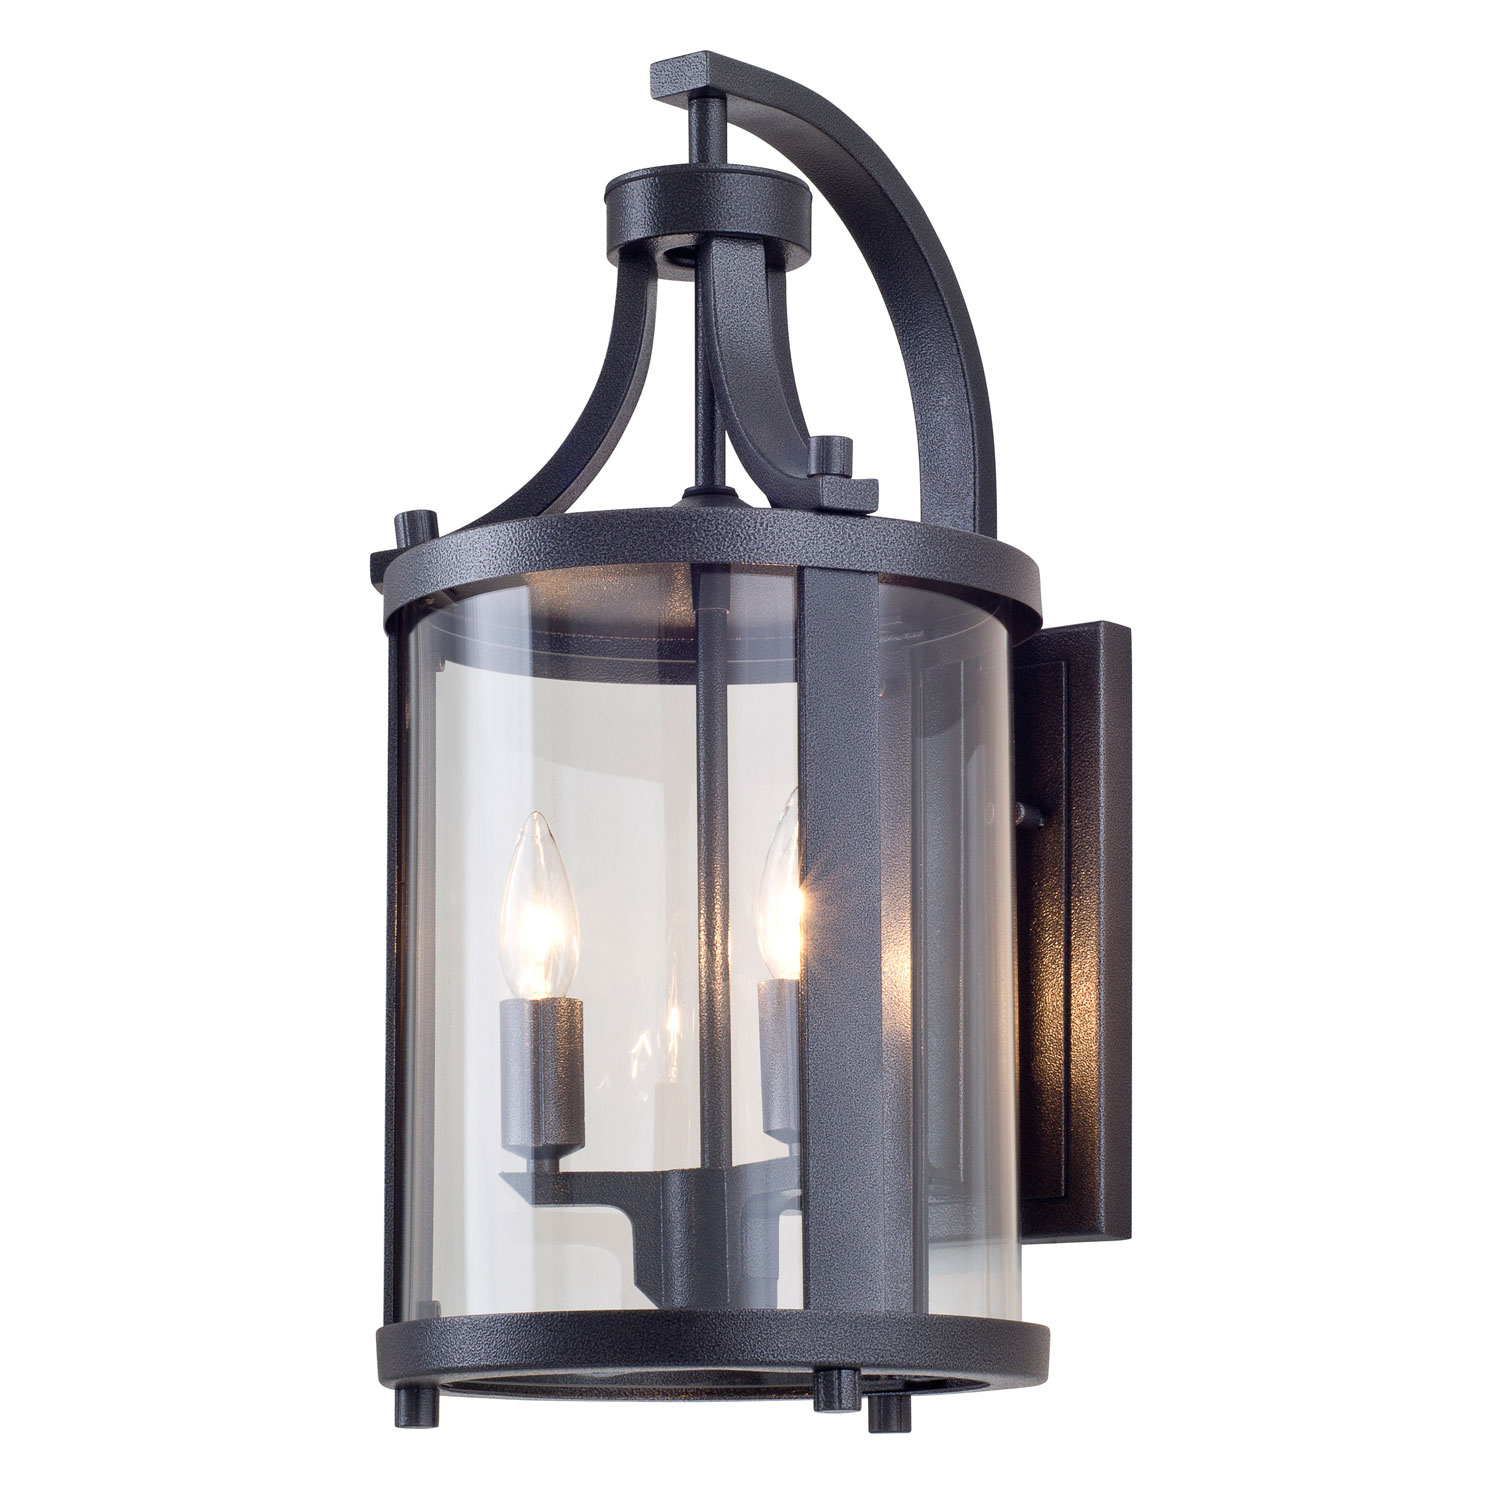 10 facts about outdoor wall mount light fixtures warisan for Outdoor porch light fixtures